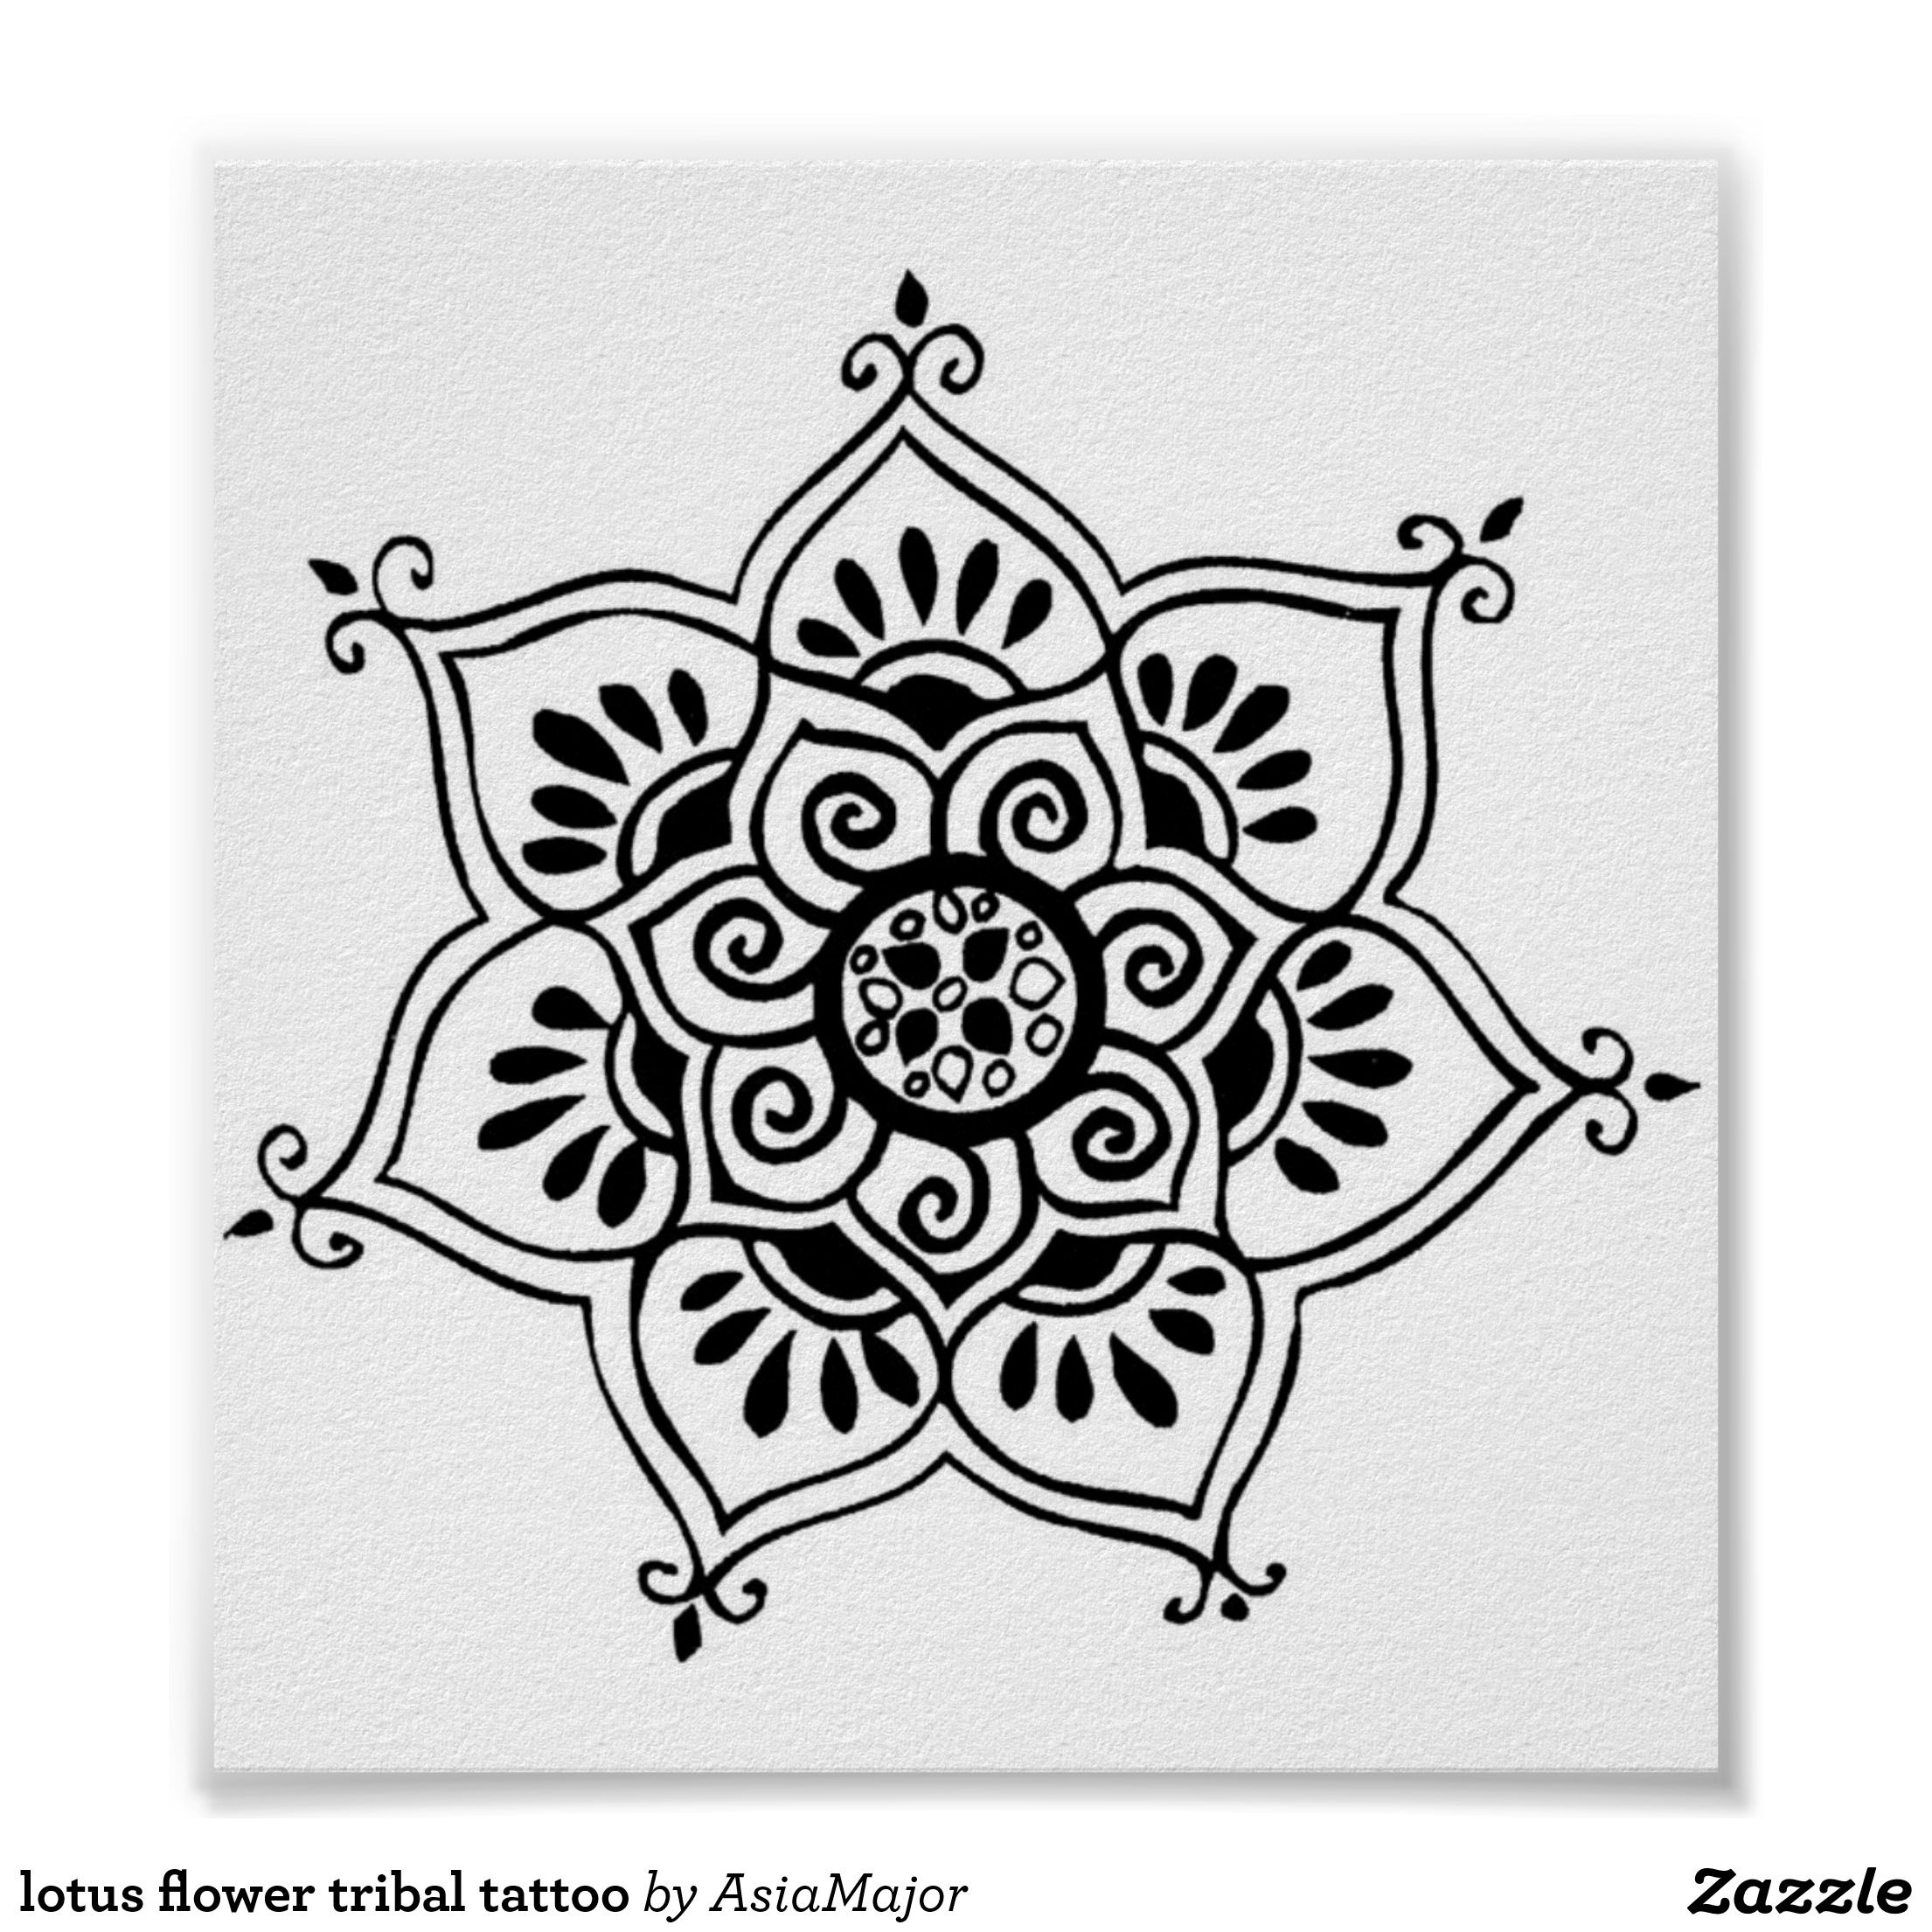 Lotus flower tribal tattoo poster mandala designs pinterest lotus flower tribal tattoo poster izmirmasajfo